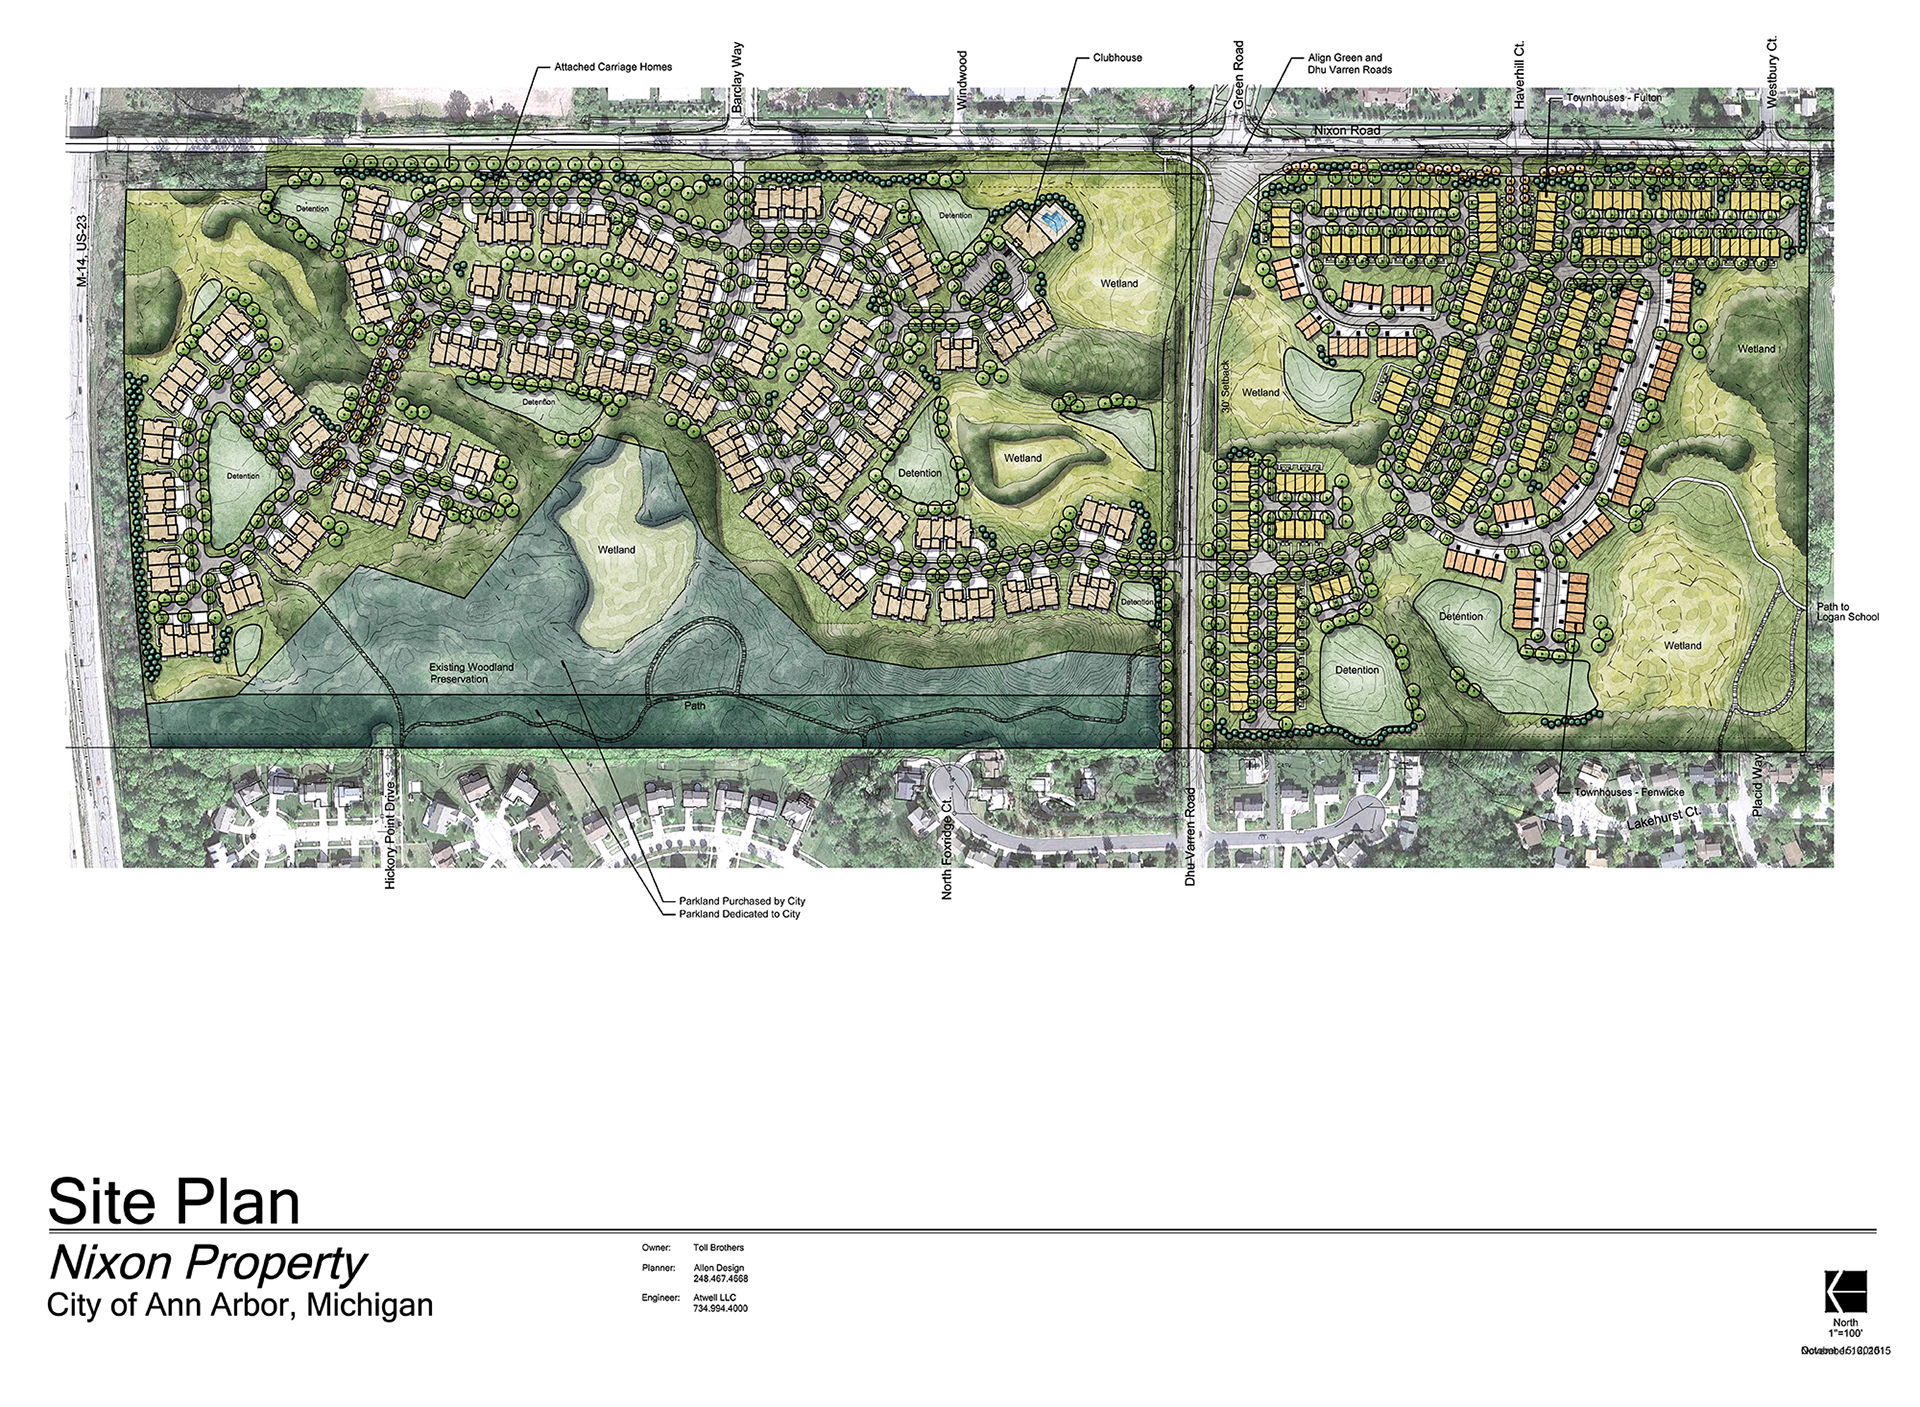 Our Approved Site Plan